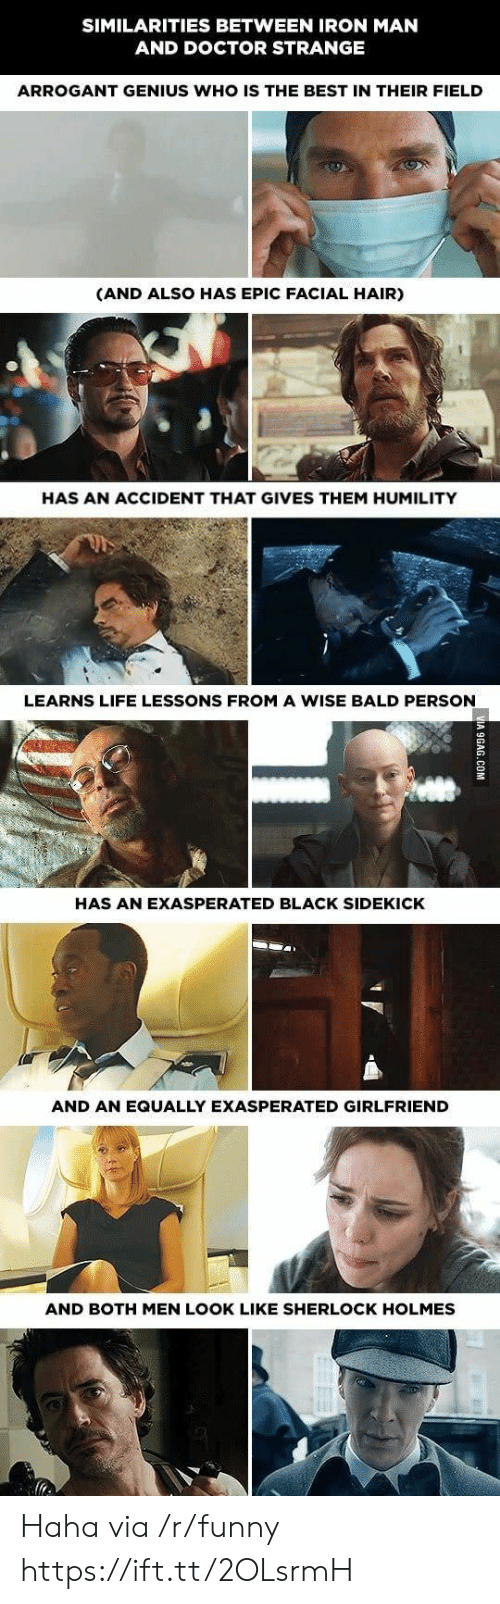 sidekick: SIMILARITIES BETWEEN IRON MAN  AND DOCTOR STRANGE  ARROGANT GENIUS WHO IS THE BEST IN THEIR FIELD  (AND ALSO HAS EPIC FACIAL HAIR)  HAS AN ACCIDENT THAT GIVES THEM HUMILITY  LEARNS LIFE LESSONS FROM A WISE BALD PERSON  HAS AN EXASPERATED BLACK SIDEKICK  AND AN EQUALLY EXASPERATED GIRLFRIEND  AND BOTH MEN LOOK LIKE SHERLOCK HOLMES Haha via /r/funny https://ift.tt/2OLsrmH